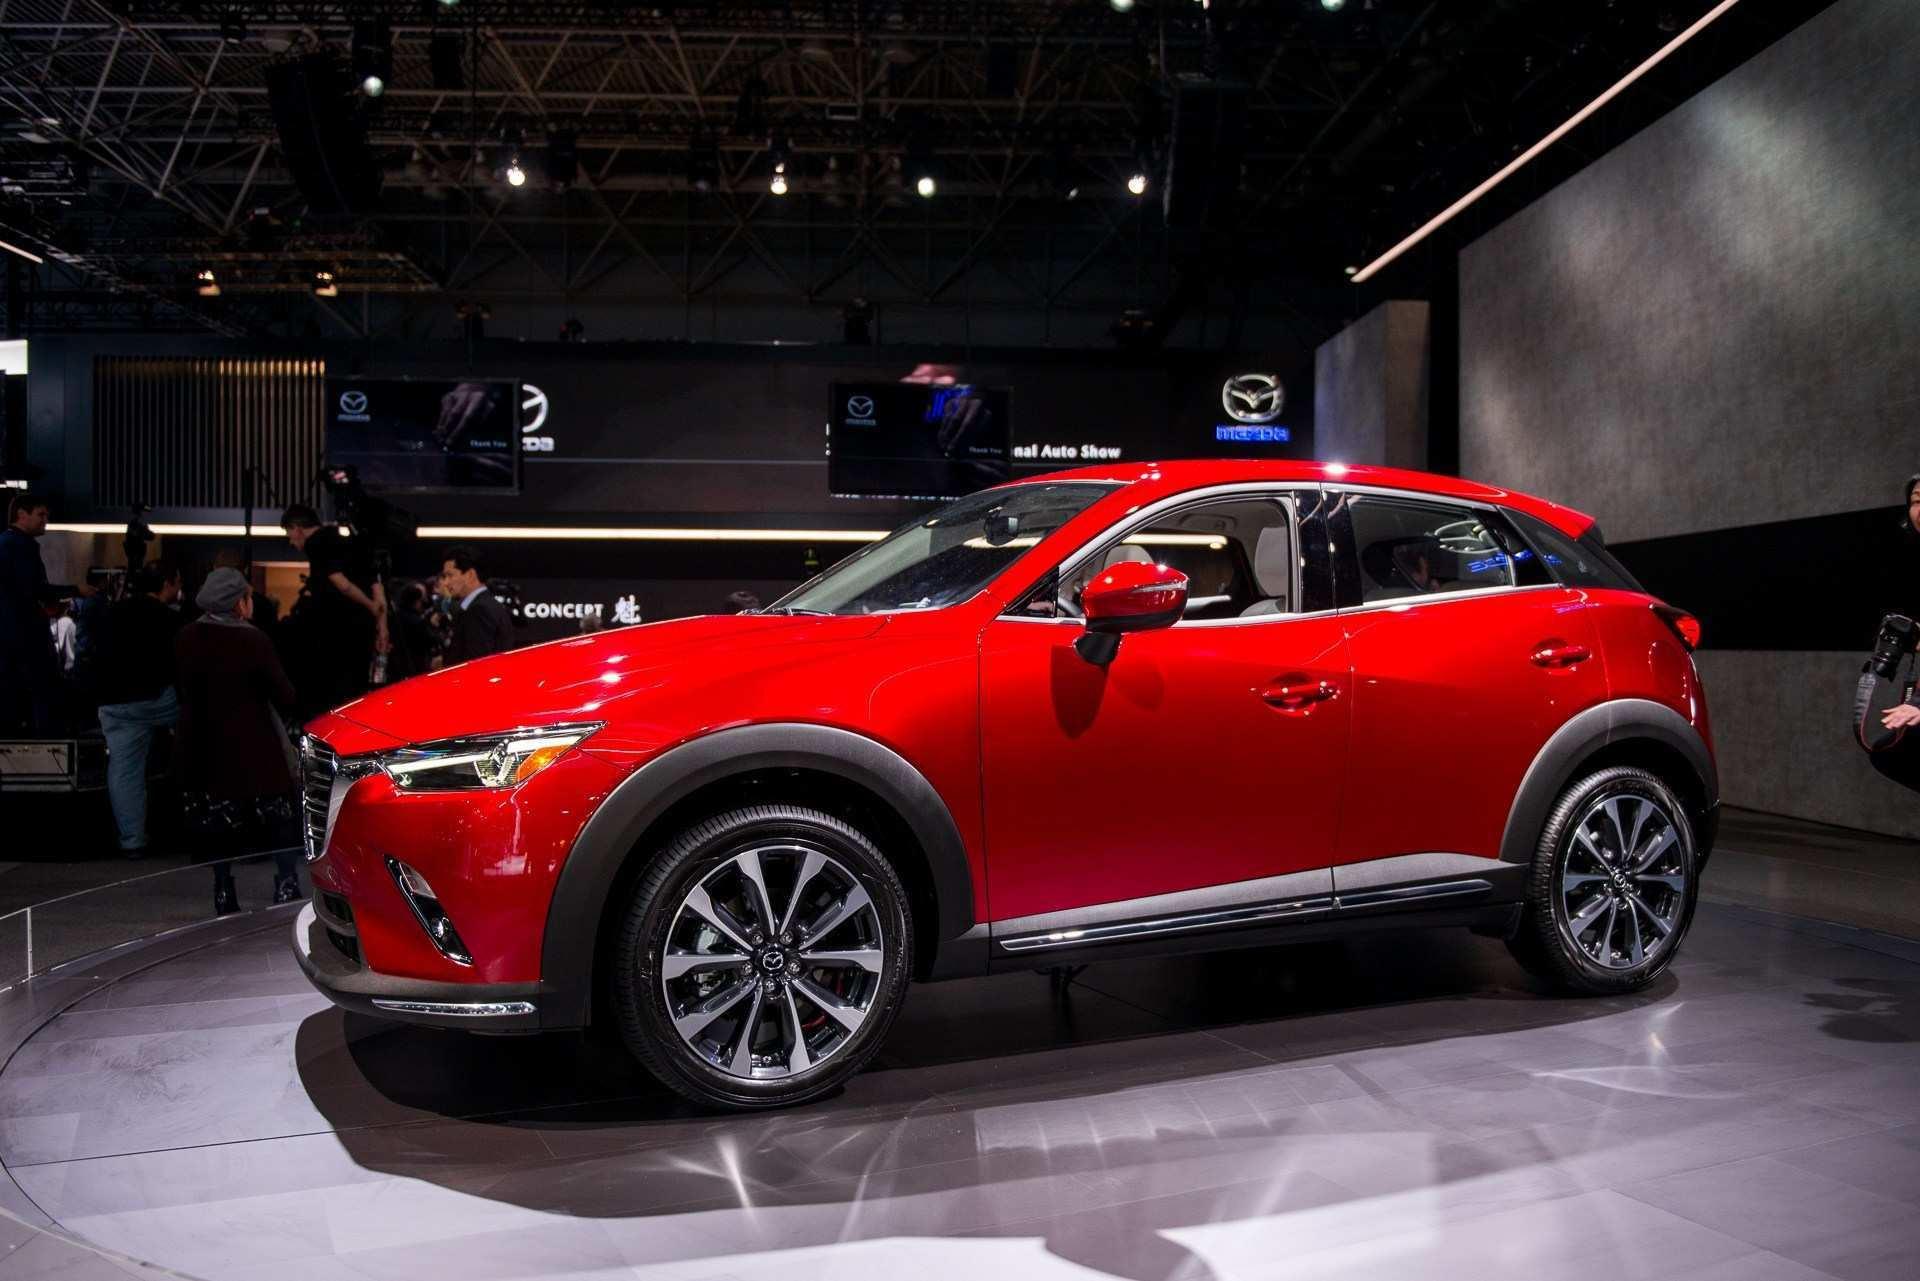 51 The Best 2020 Mazda Cx 3 Reviews